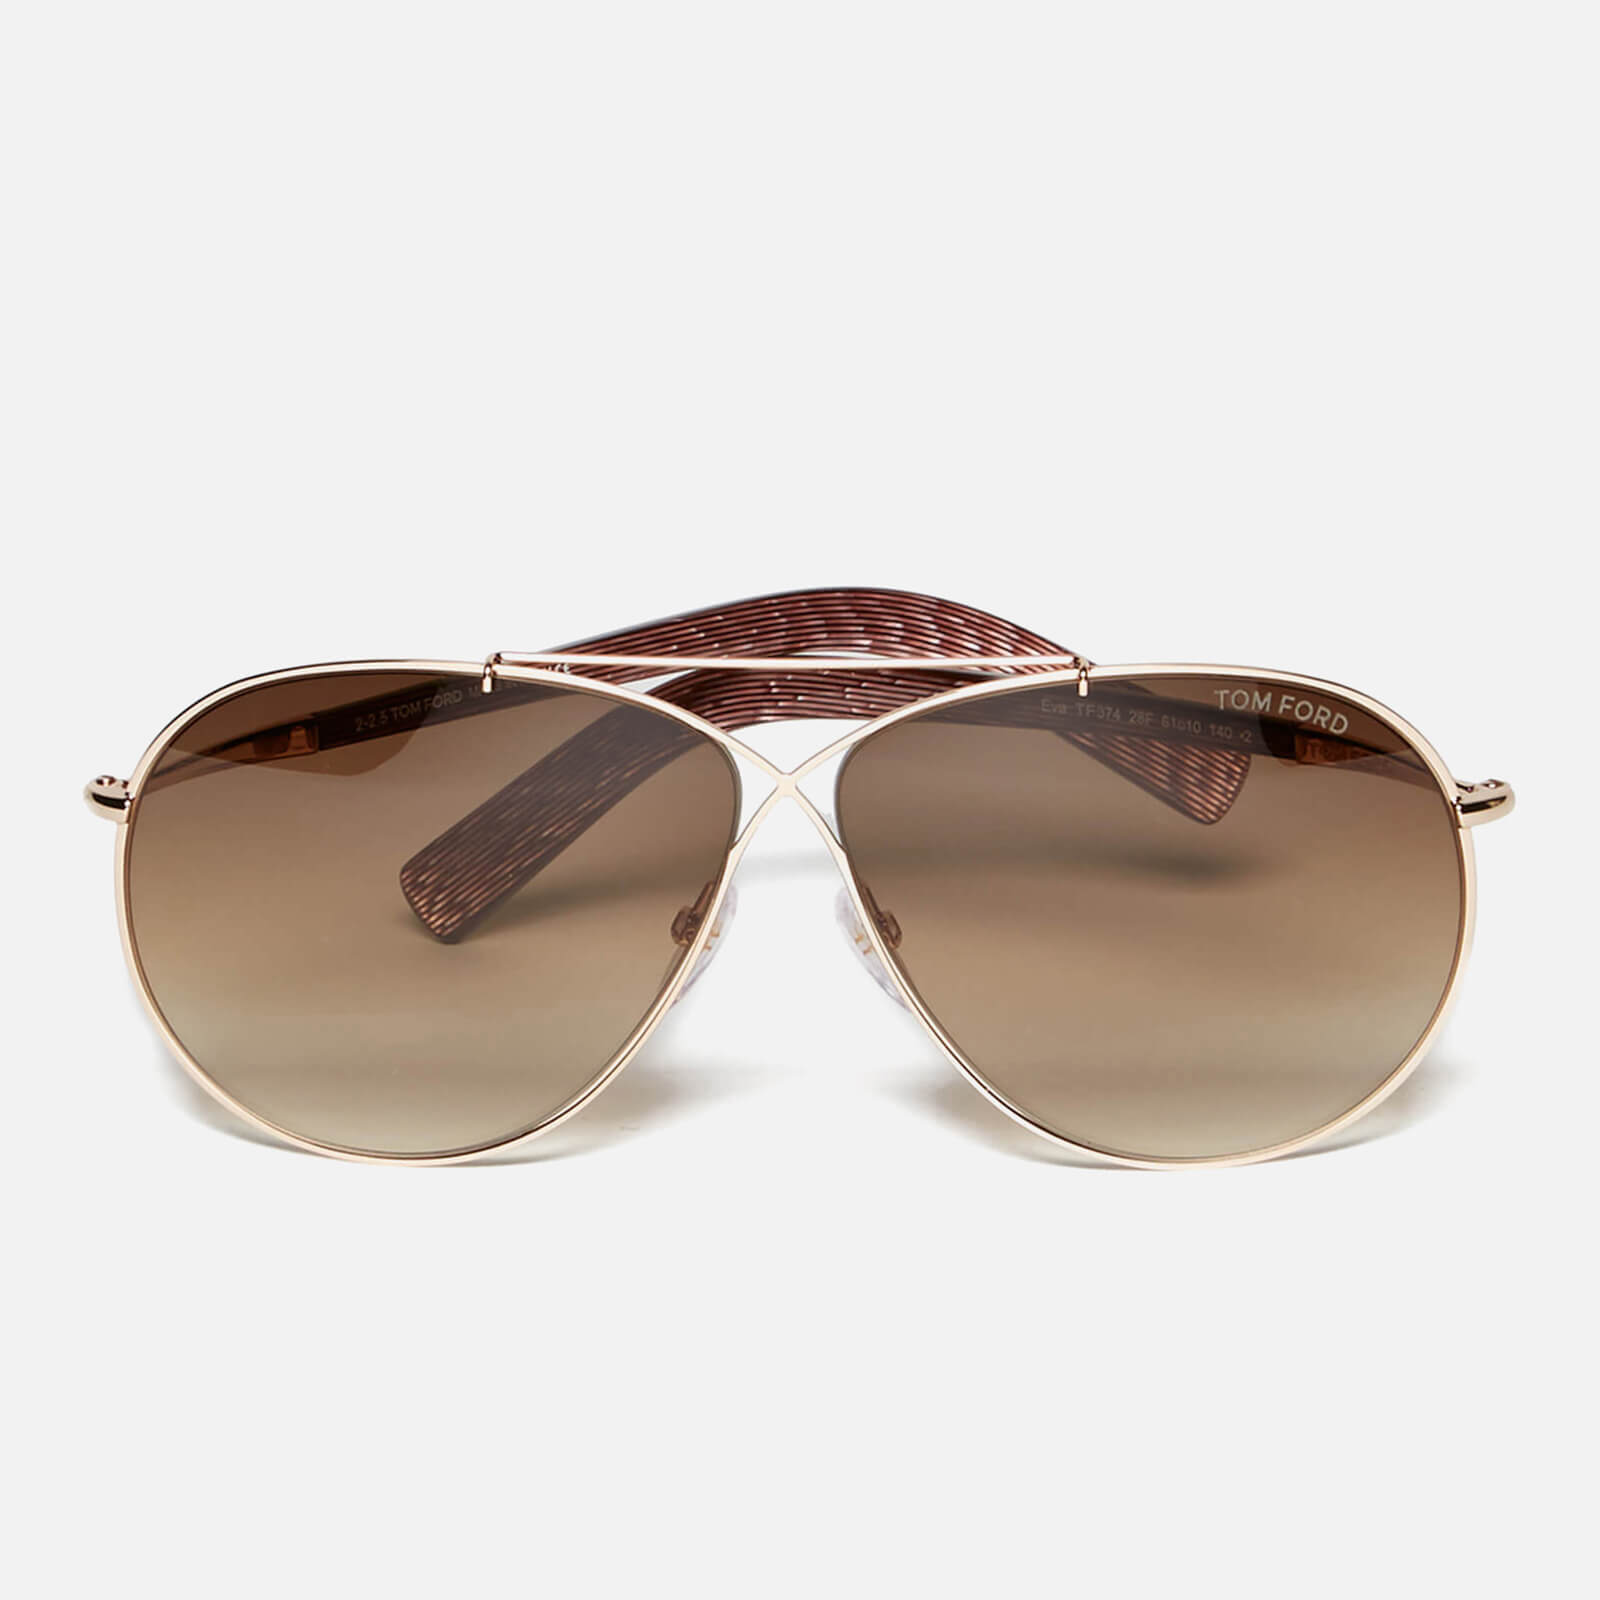 877c6a1ae7c0 Tom Ford Women s Eva Sunglasses - Brown - Free UK Delivery over £50